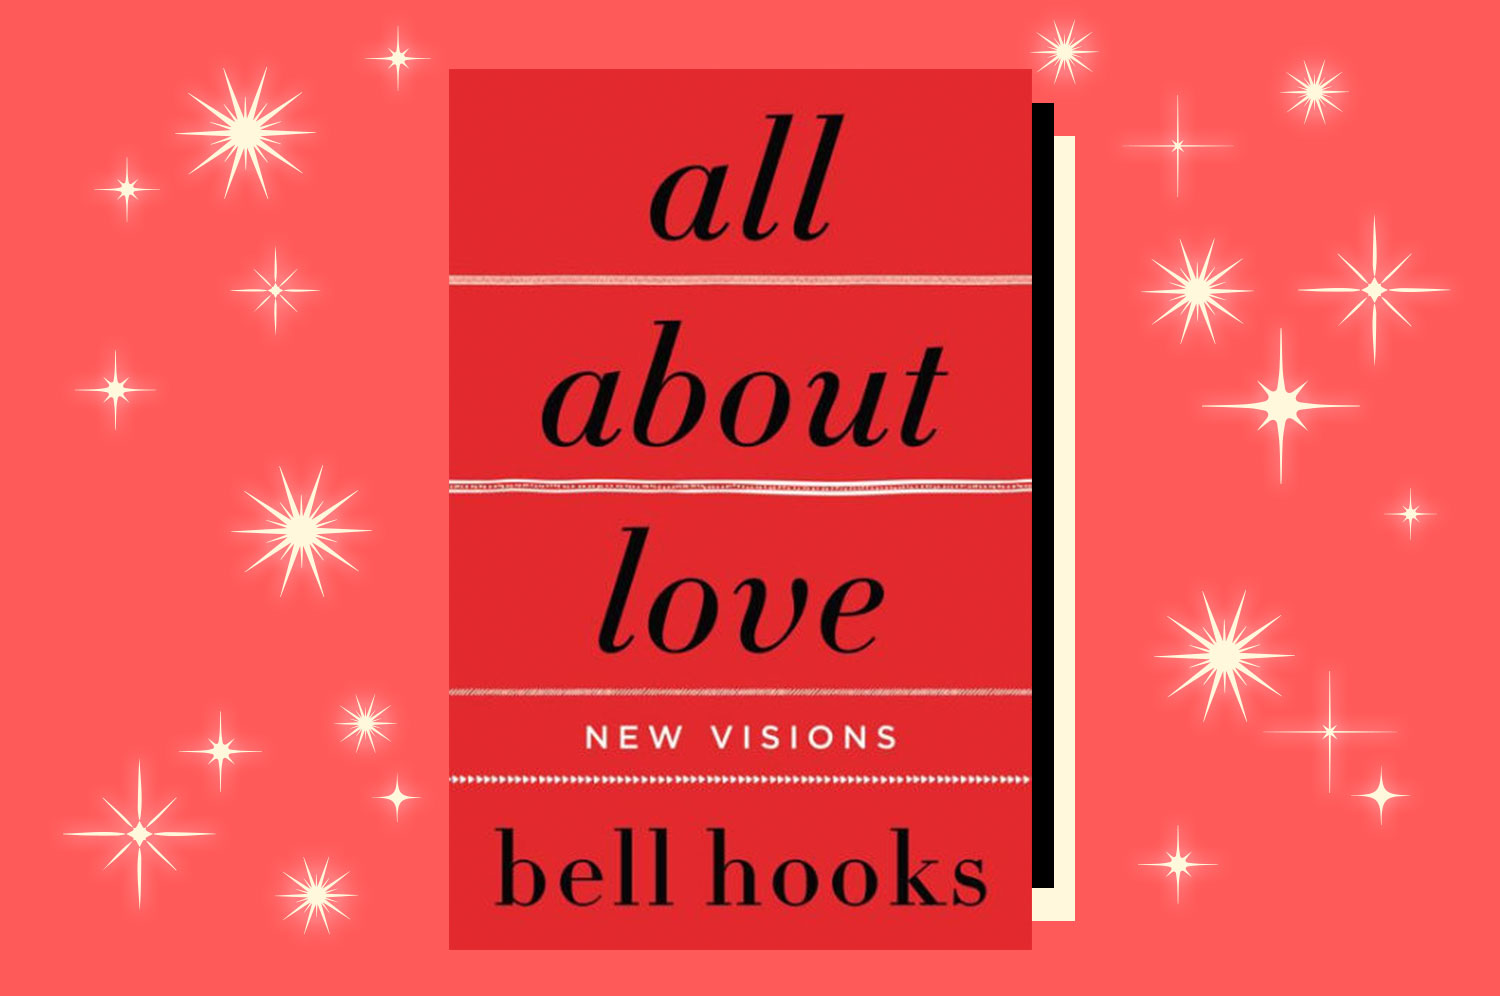 A copy of All About Love by bell hooks on a pink starred background